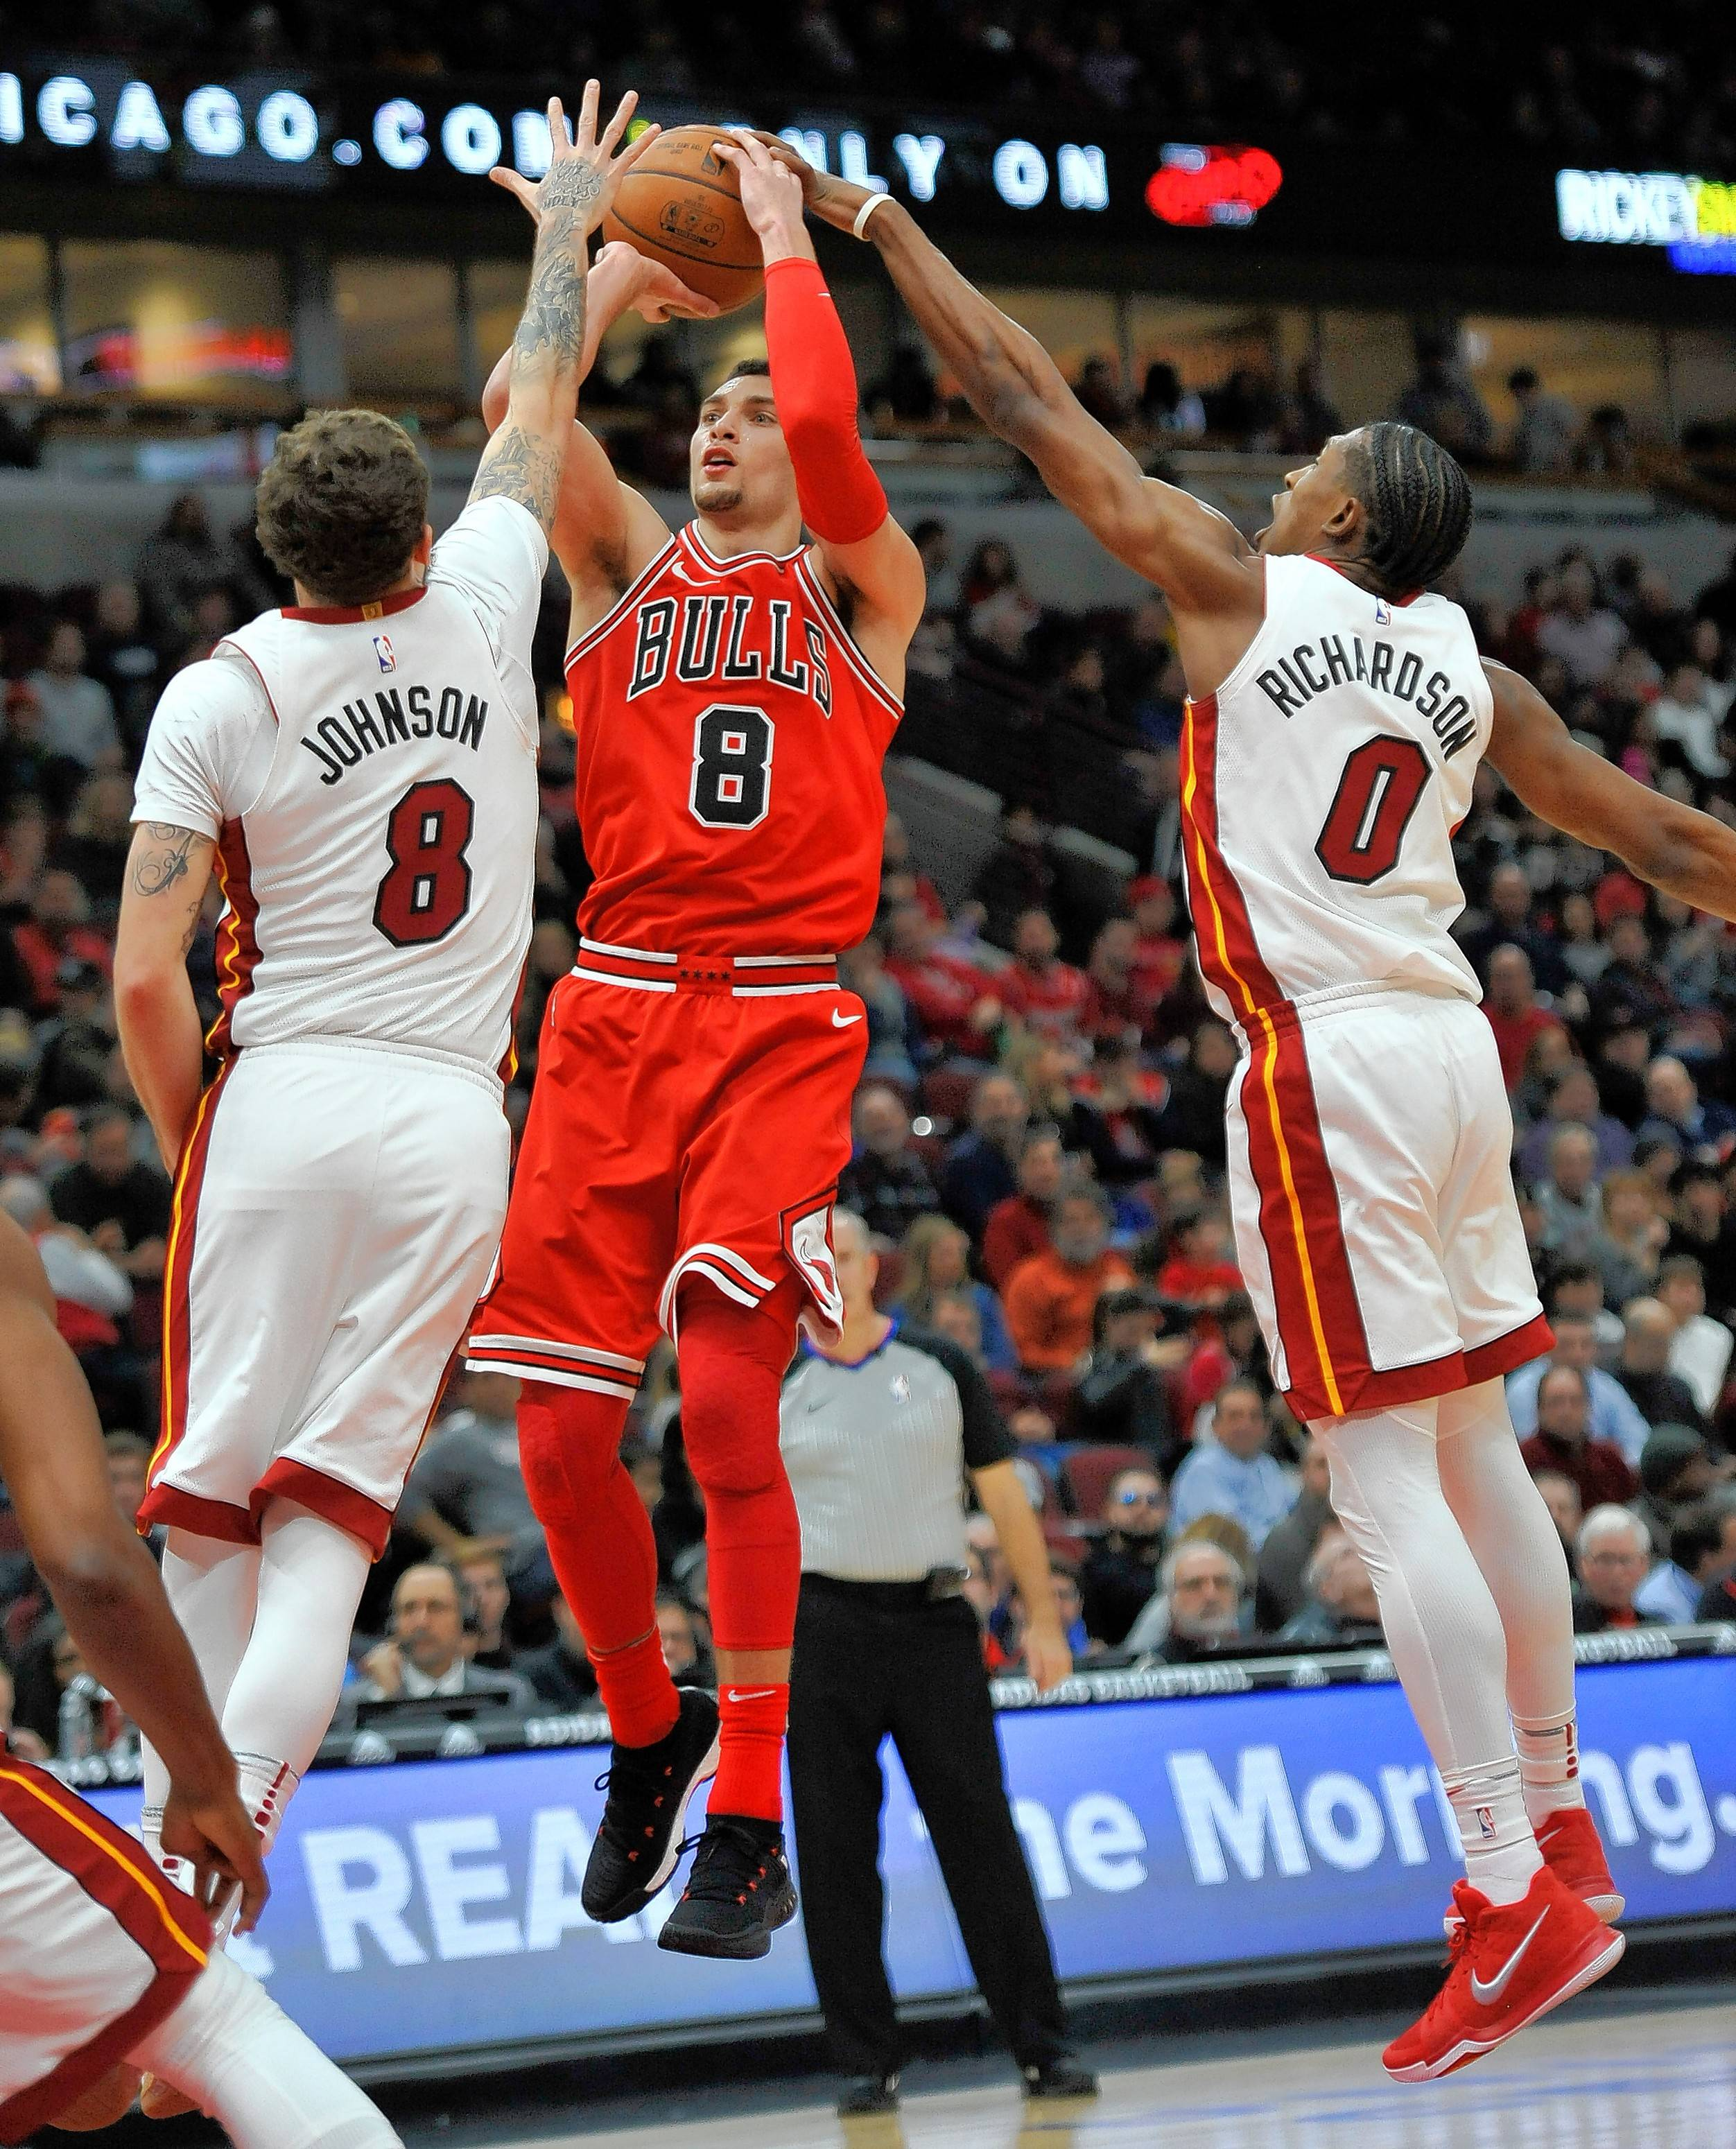 Since joining the Bulls lineup, Zach LaVine has scored 32 points in 39 minutes while shooting 57 percent from the field in two games of action.